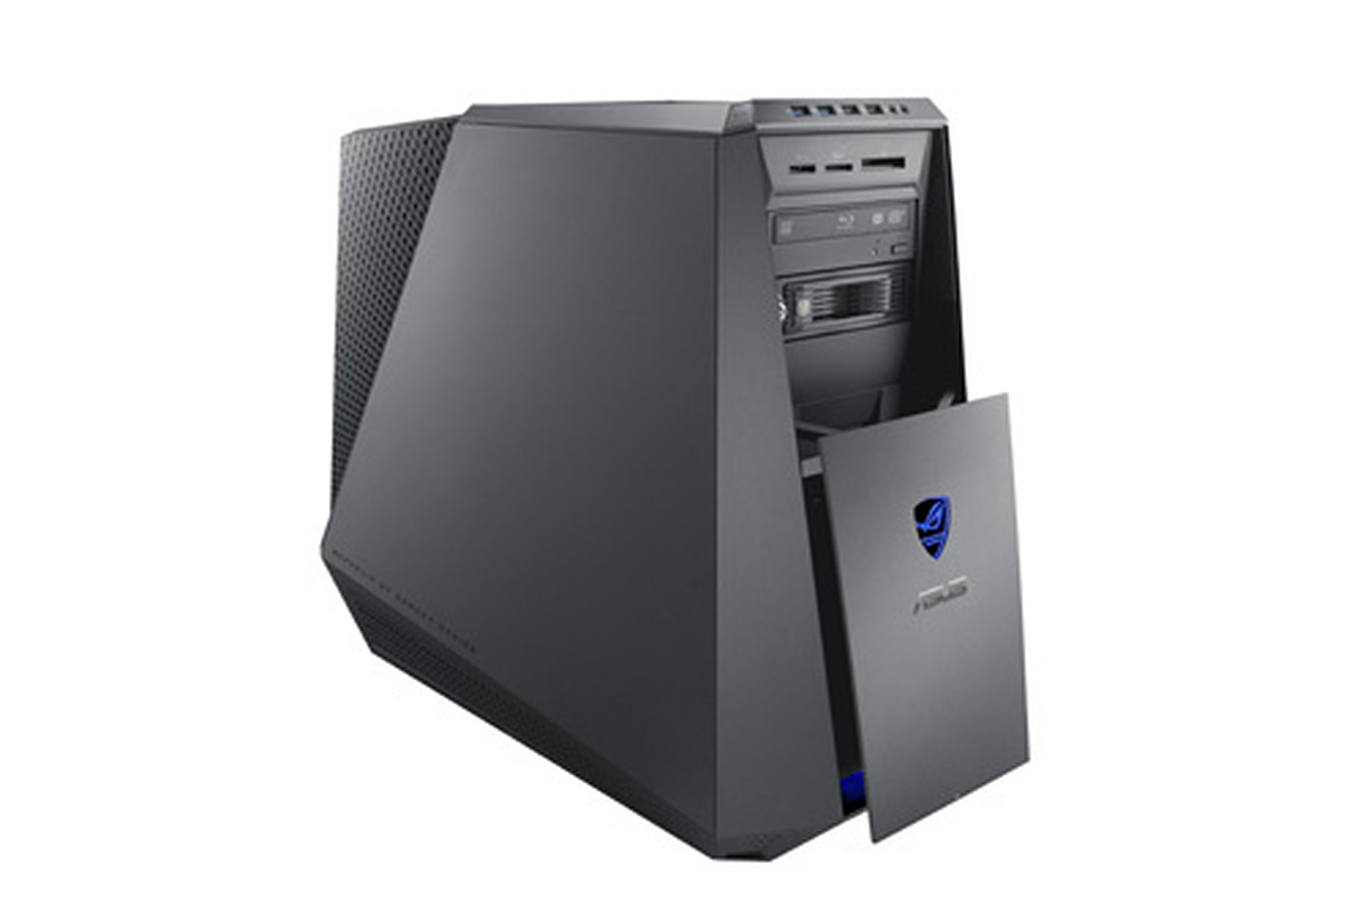 pc bureau asus i7 28 images asus k31cd fr125t pc de bureau asus sur ldlc pc de bureau asus. Black Bedroom Furniture Sets. Home Design Ideas